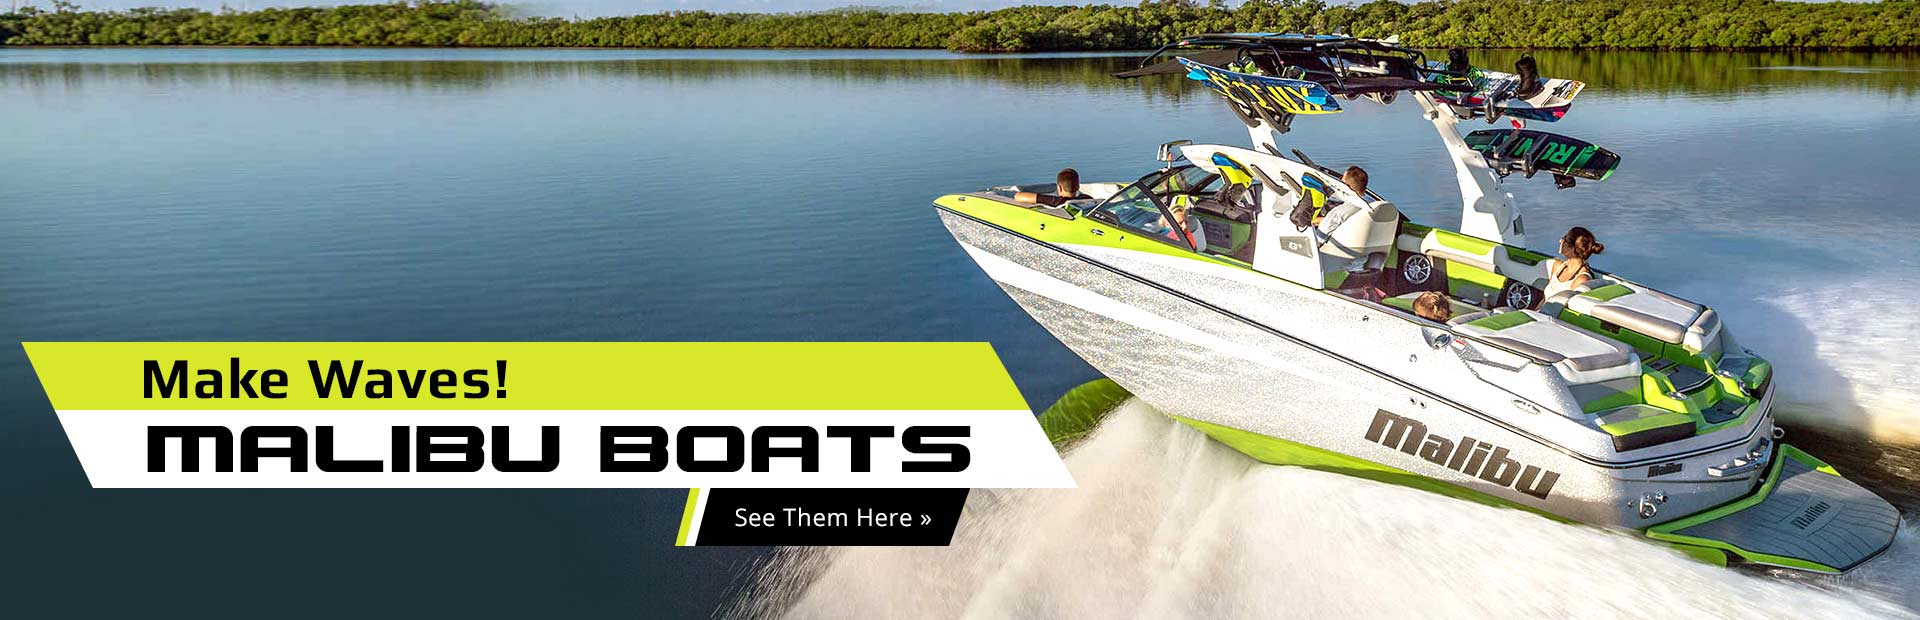 Click here to view our selection of Malibu boats!